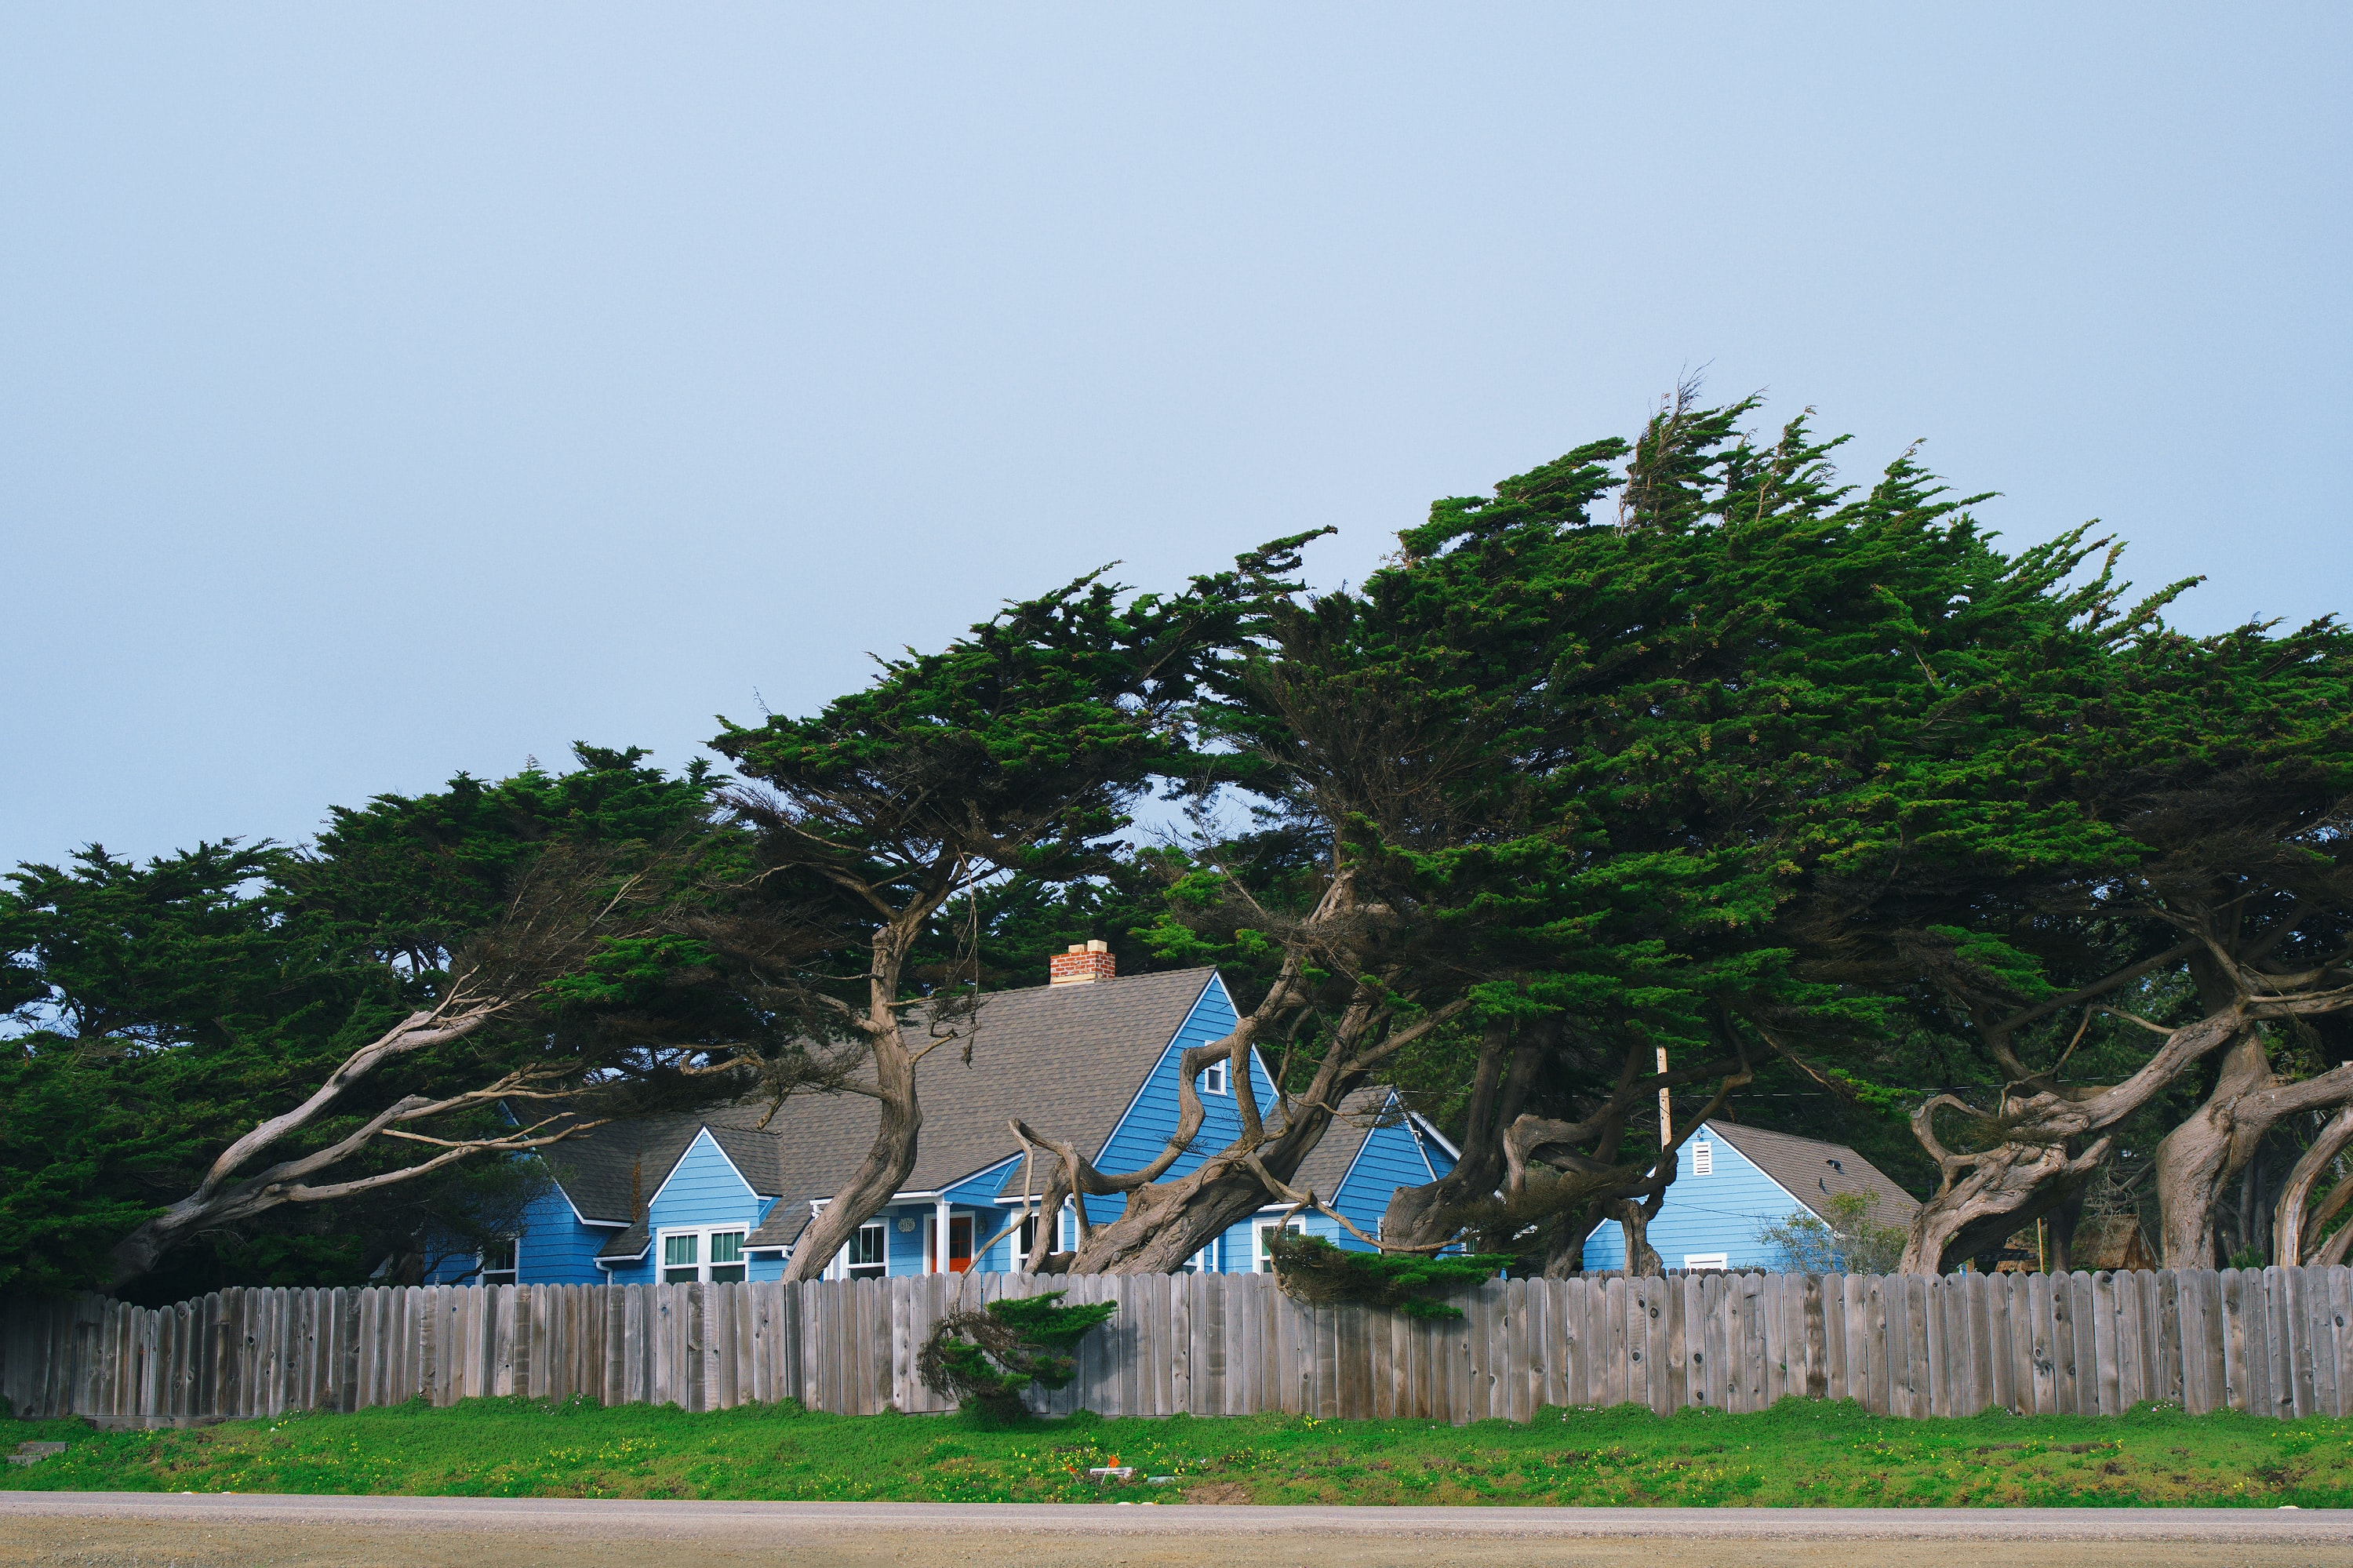 green trees beside blue and gray house during daytime